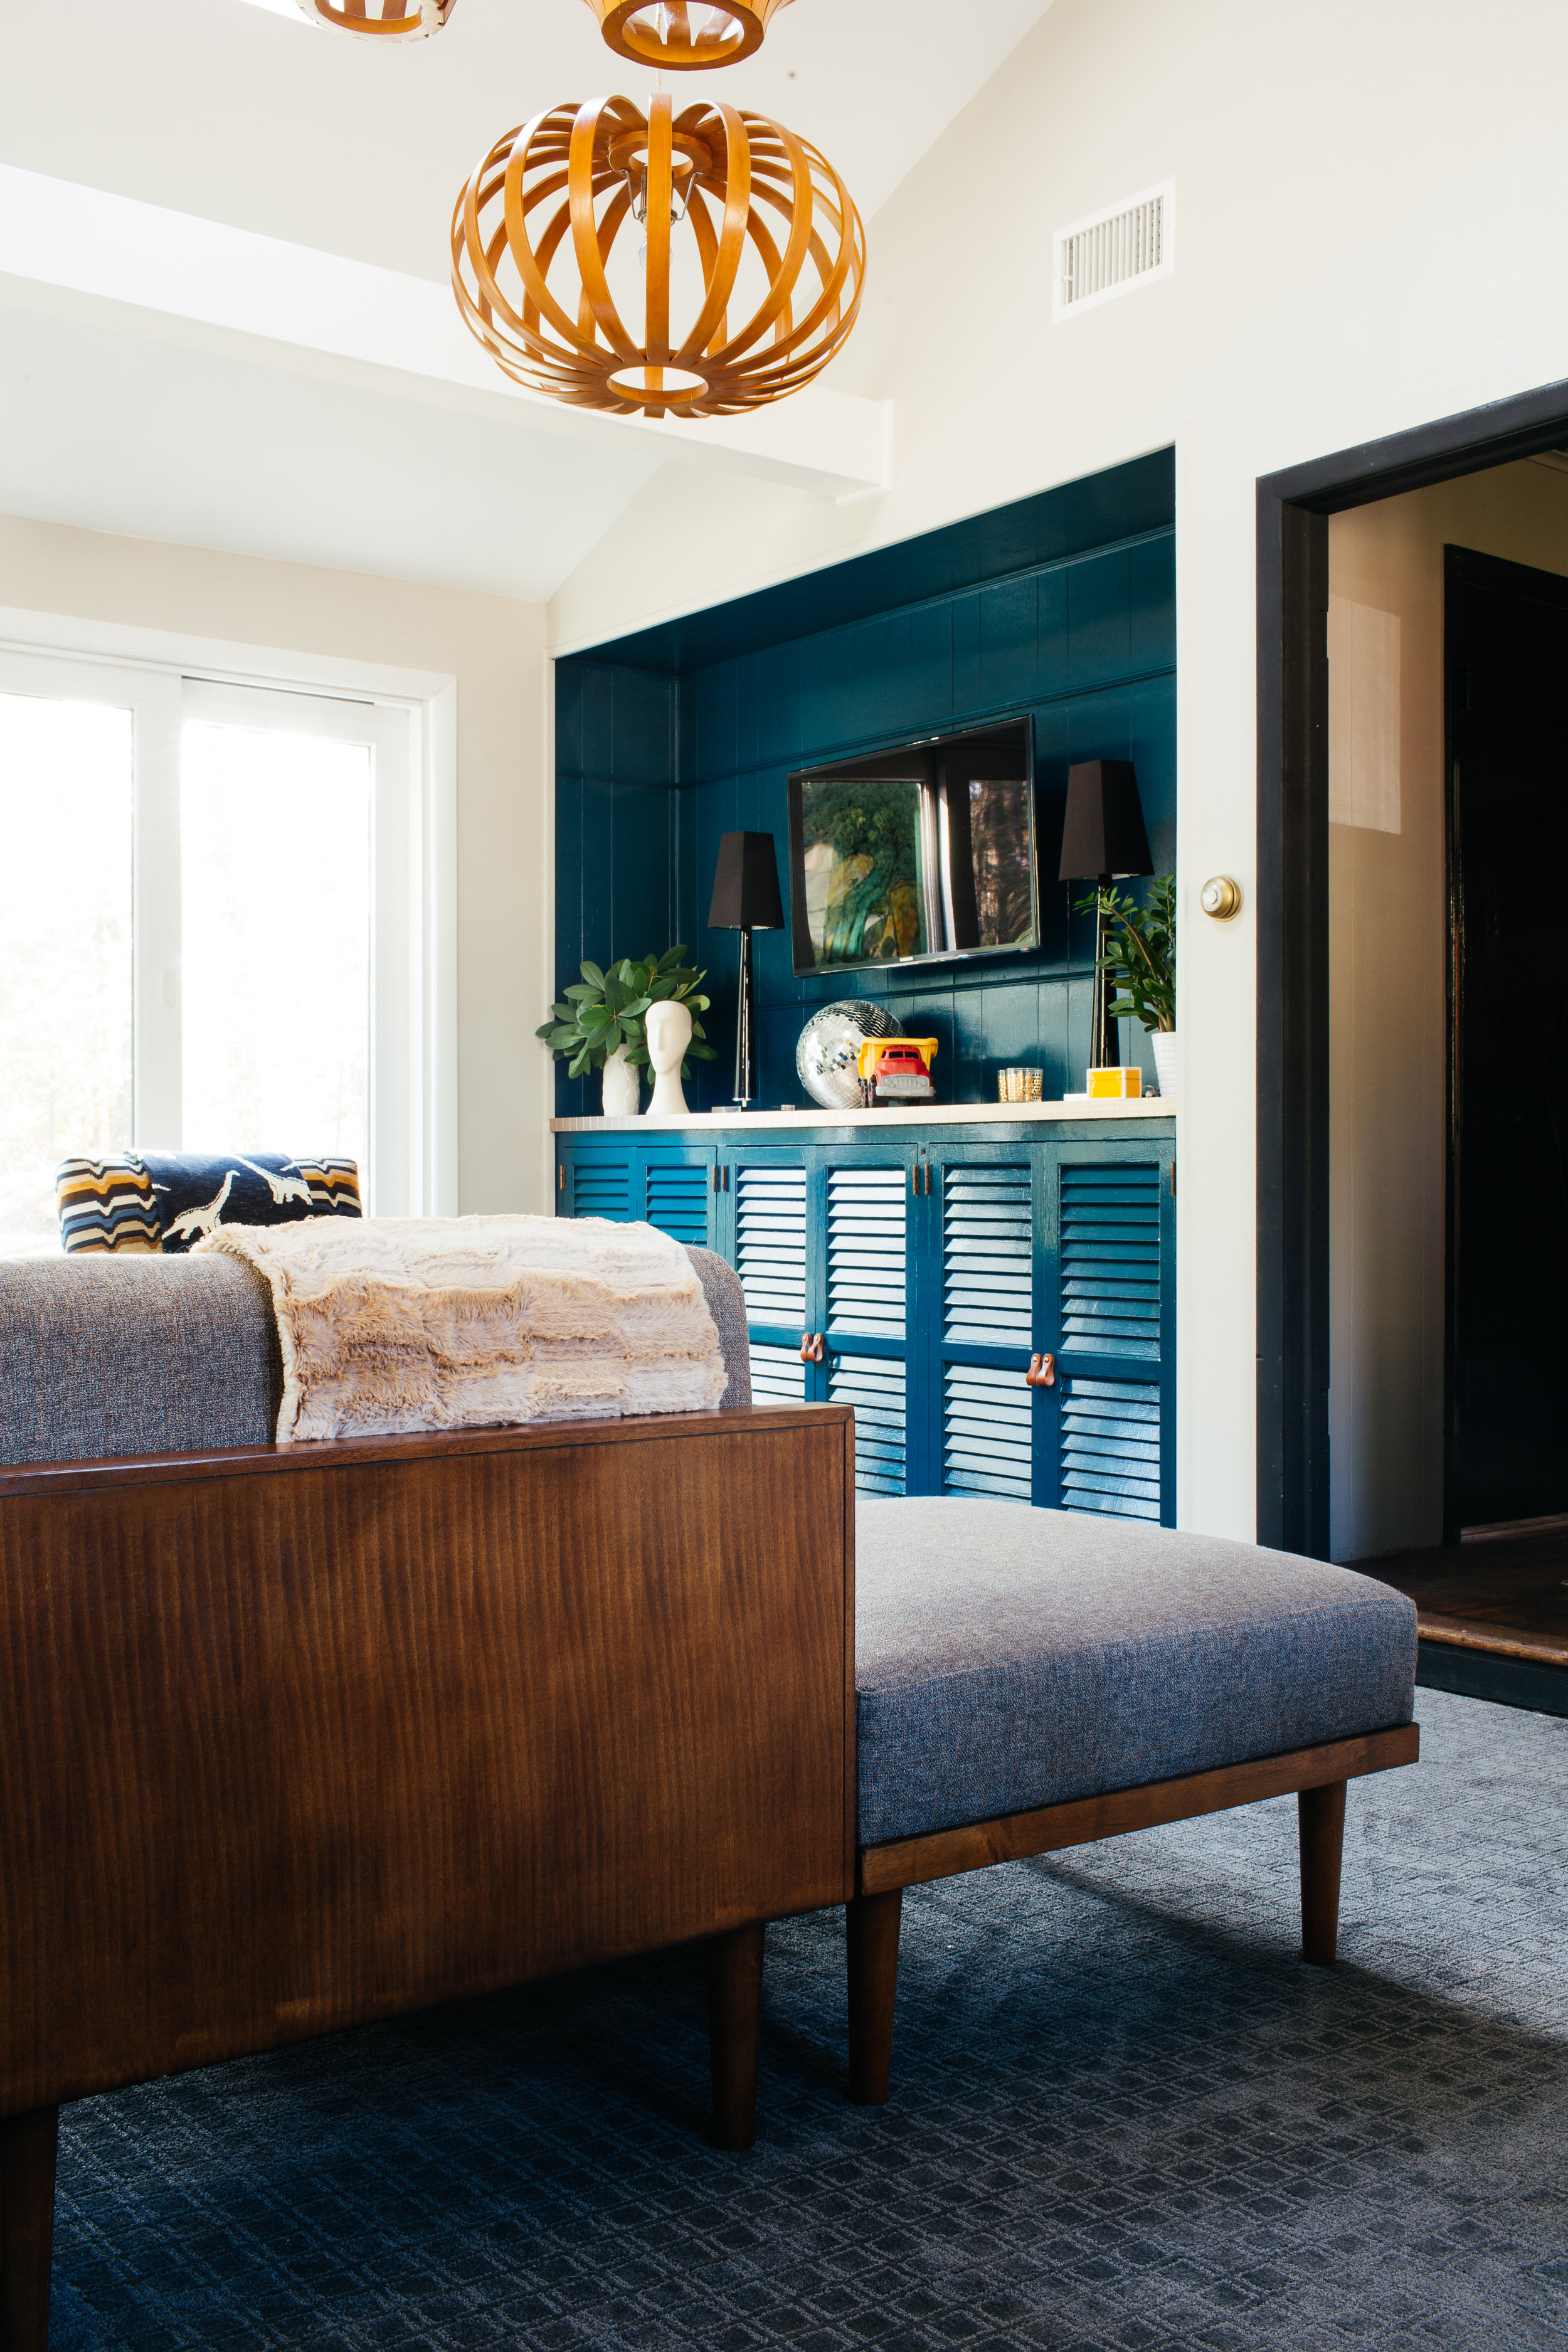 modern eclectic colorful family room design- deep teal built in cabinetry by the rath project